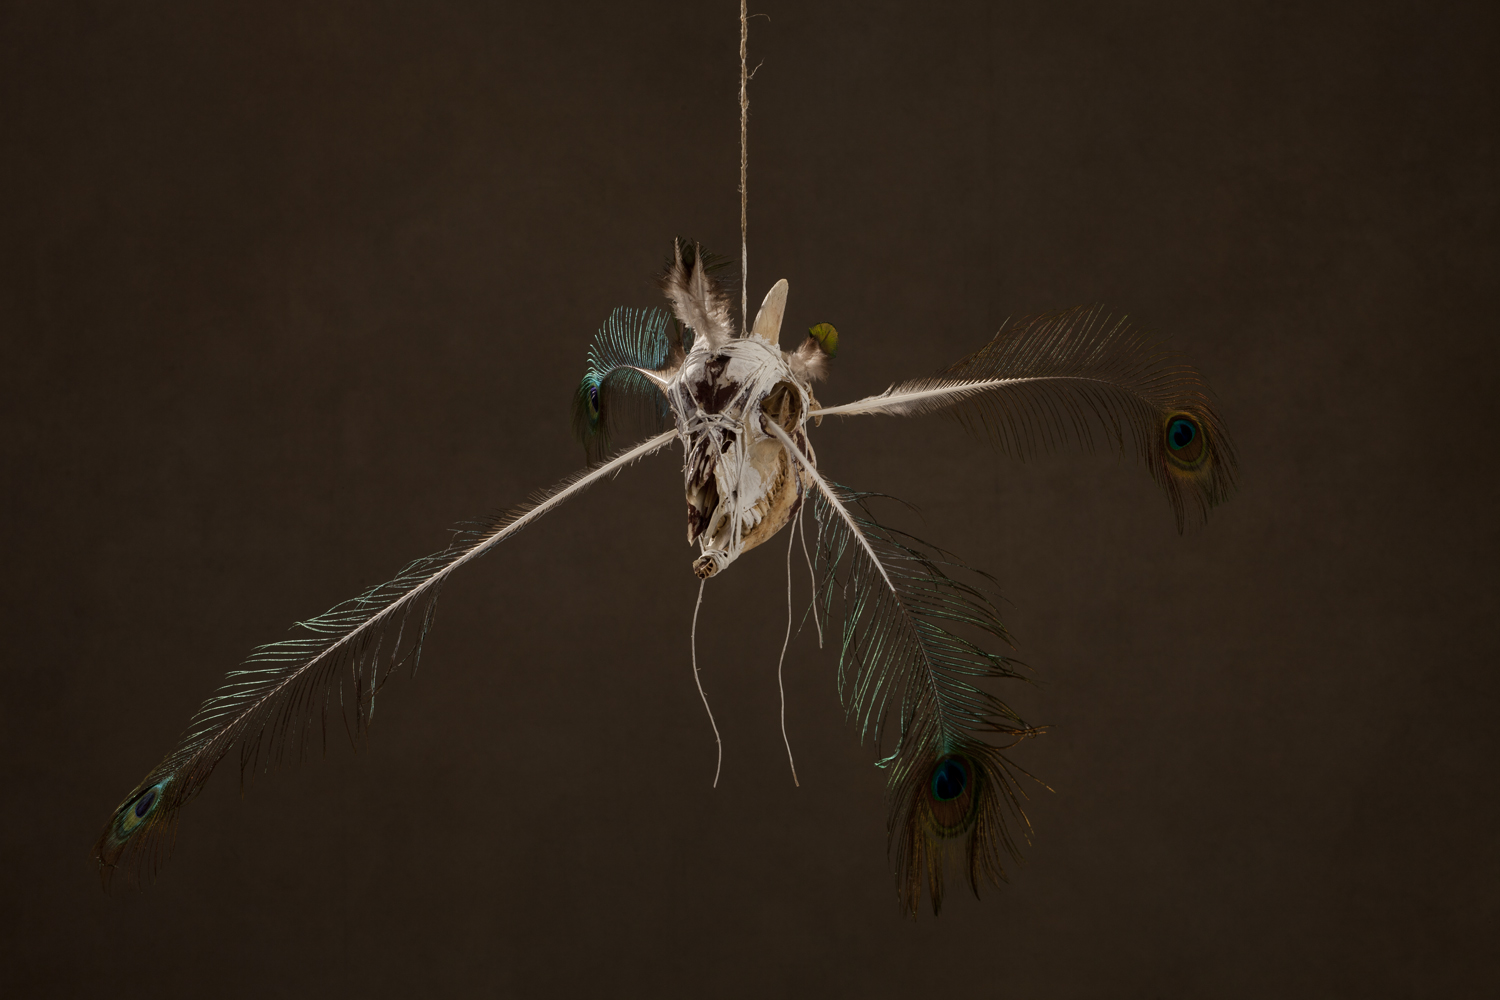 N47 SPIRIT CATCHER, 2011 60 x 80 x 20 cm / 23.6 x 31.5 x 7.9 inches Mixed Media / goat Skull